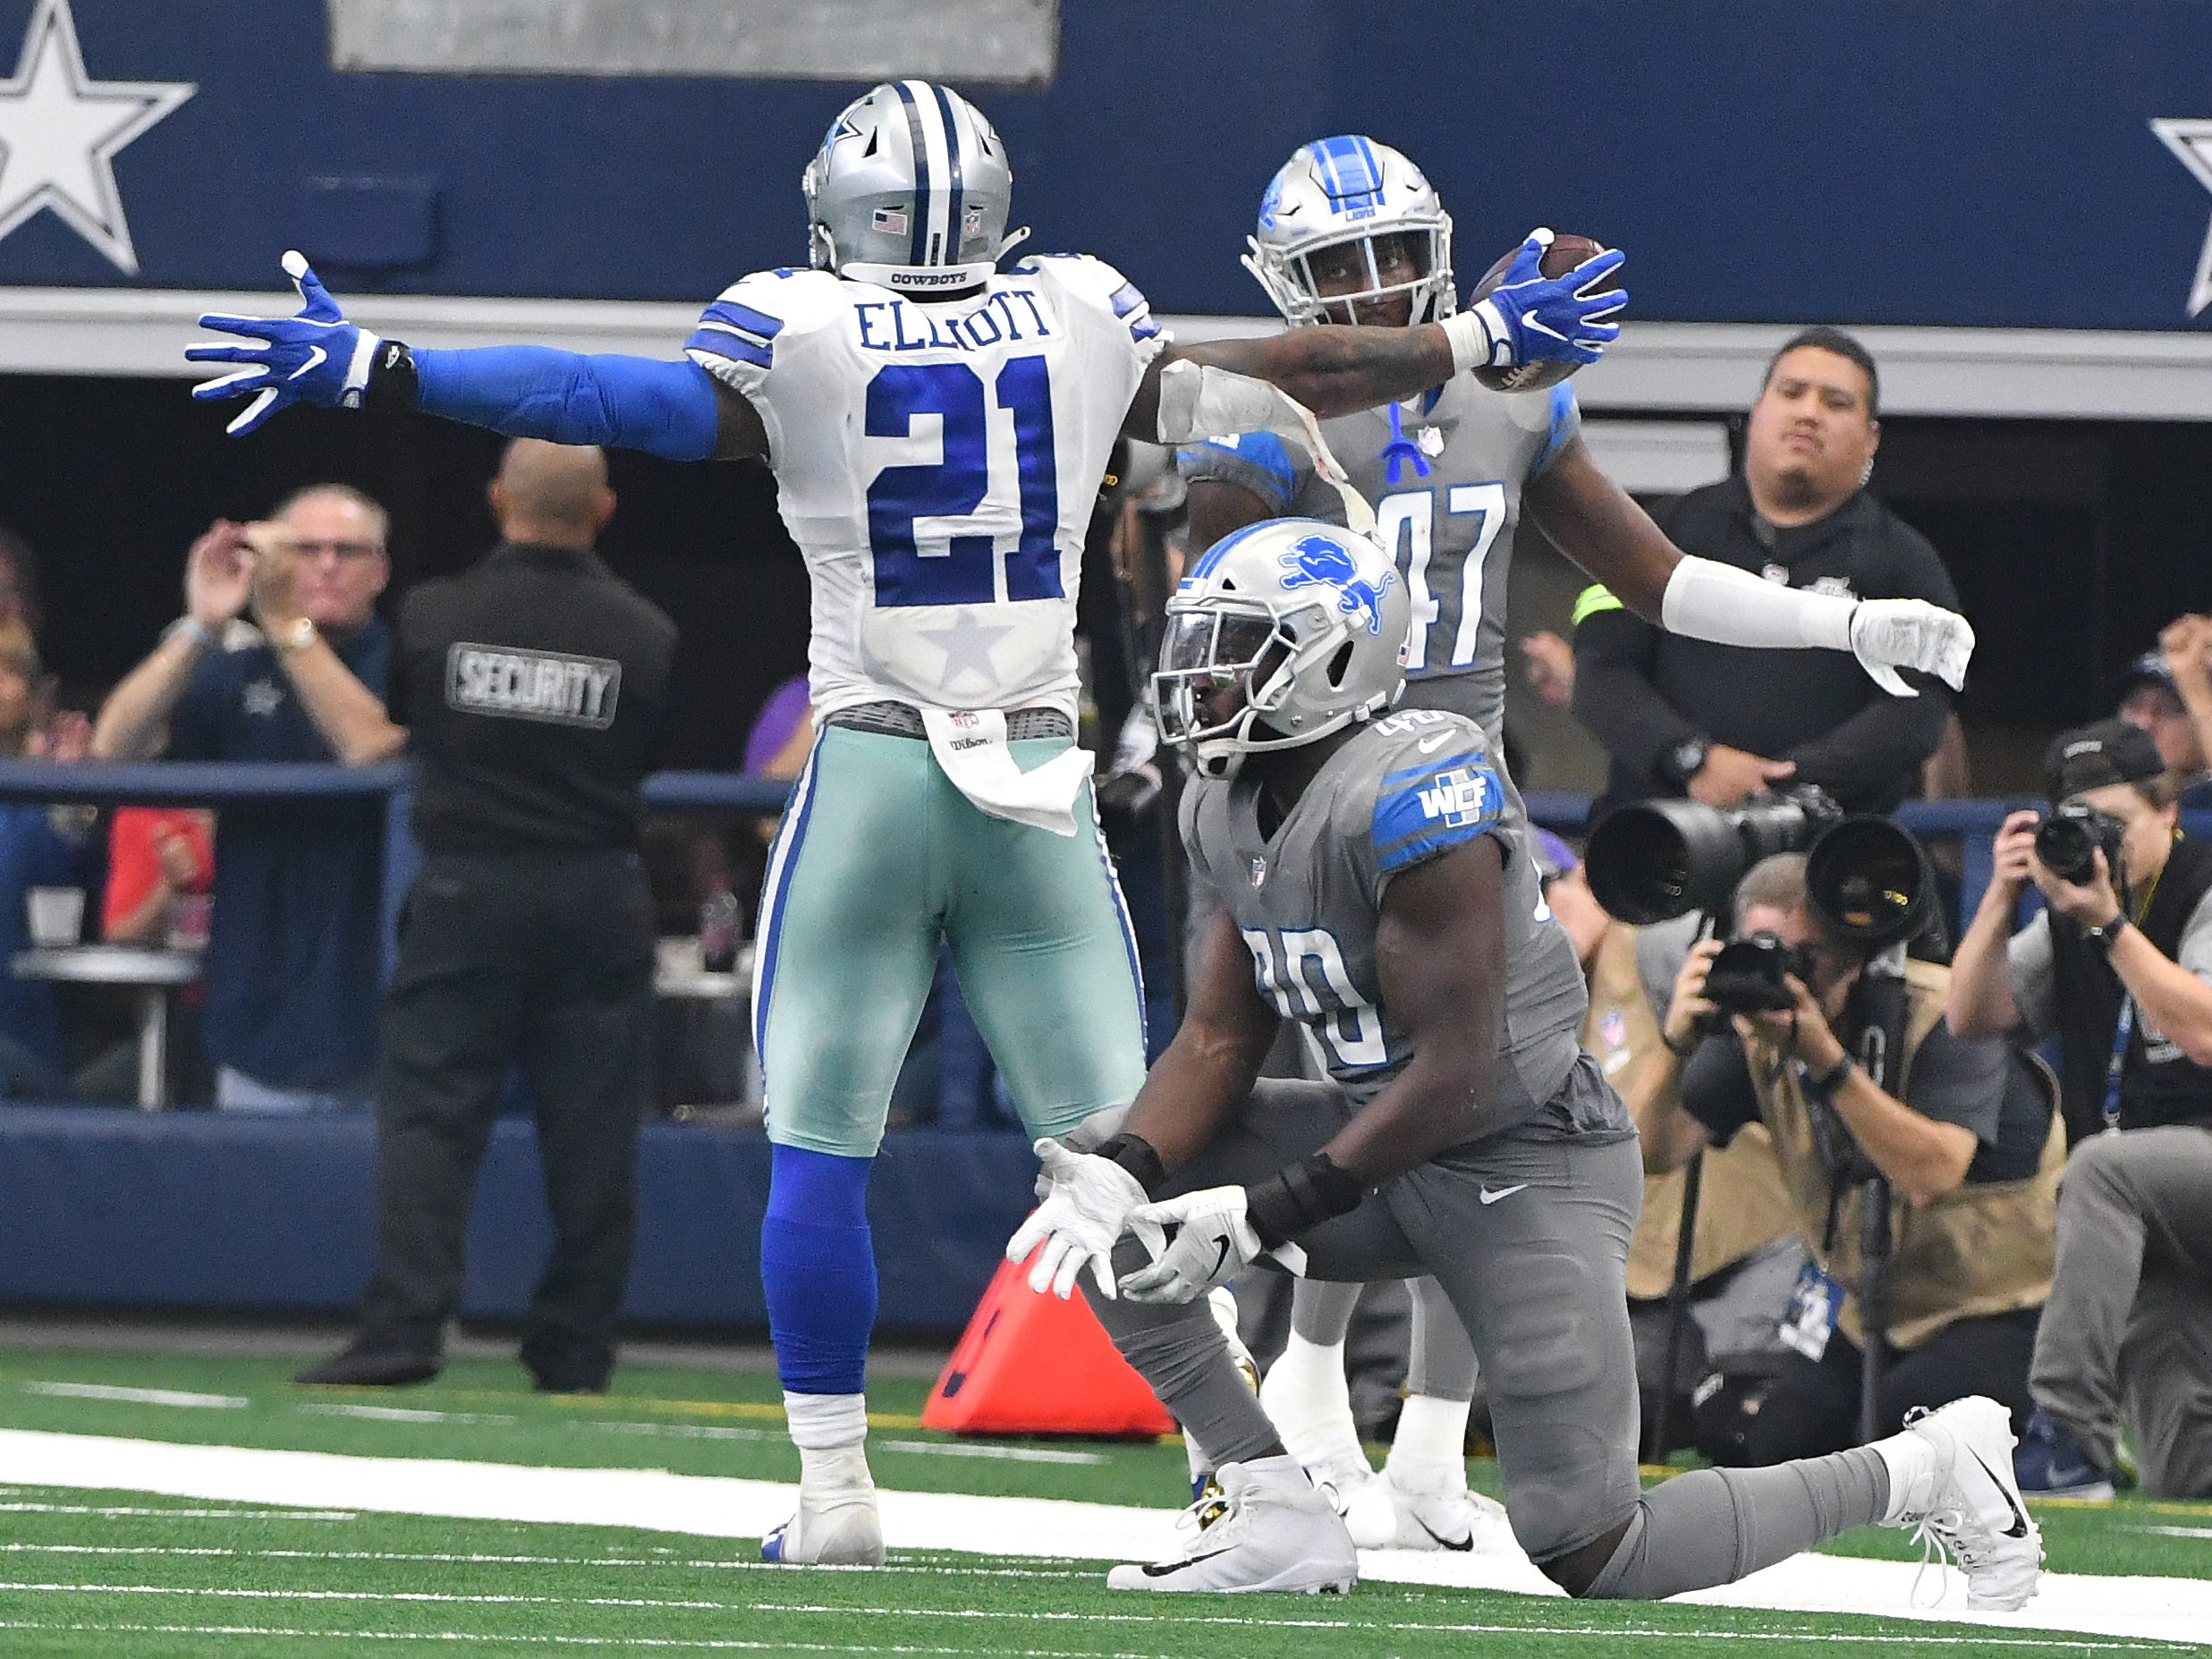 Cowboys running back Ezekiel Elliott celebrates as Lions linebacker Jarrad Davis slowly gets up, with teammate Tracy Walker, after Elliott makes a long first down reception over Davis to put Dallas within game winning field goal distance late in the fourth quarter.